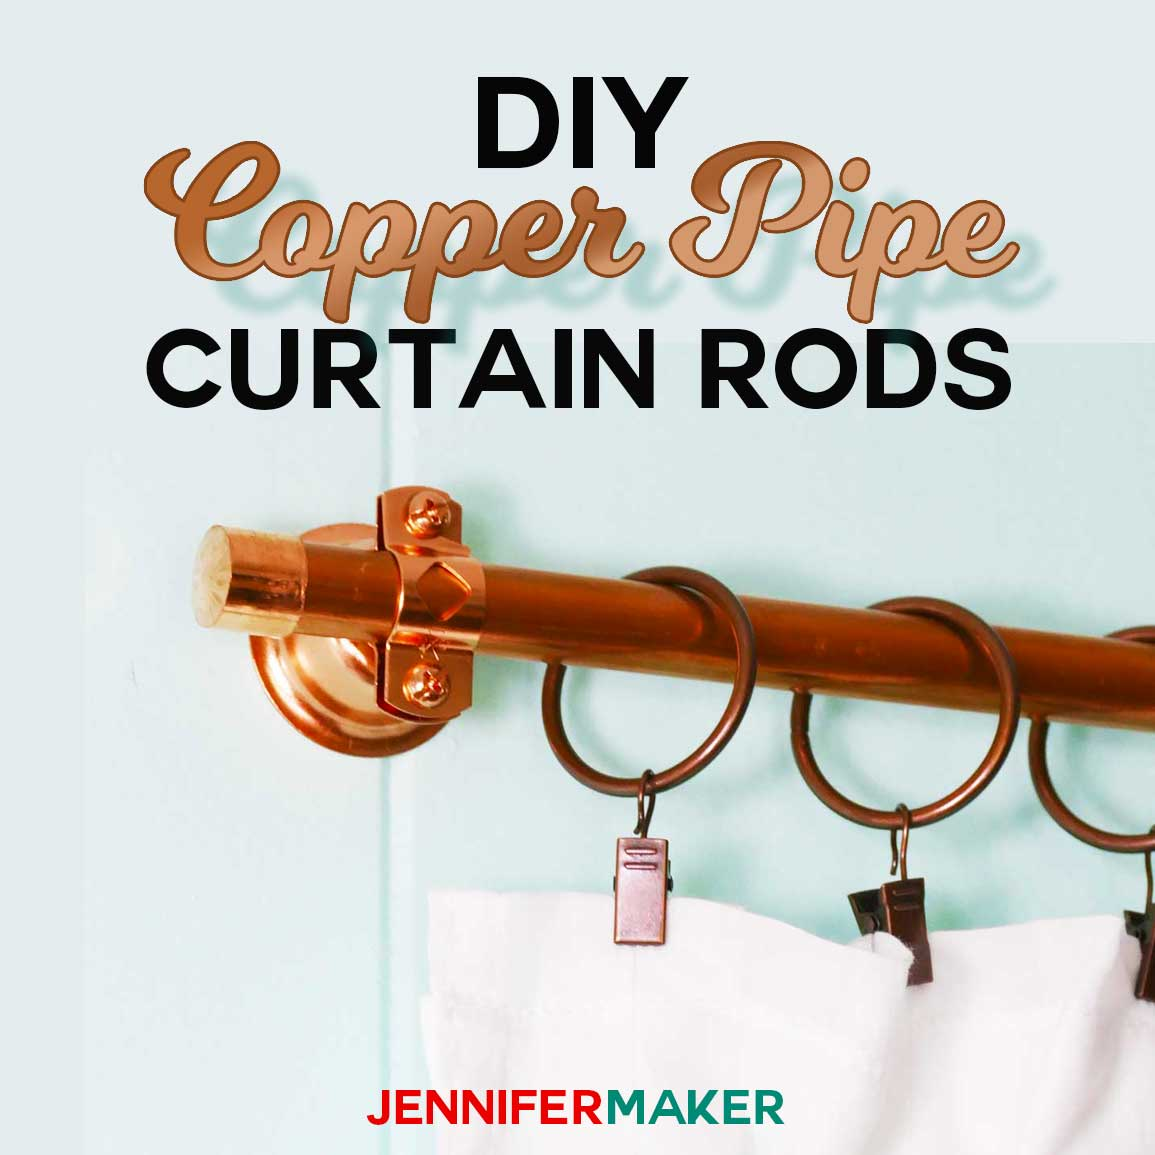 diy copper pipe curtain rods for under